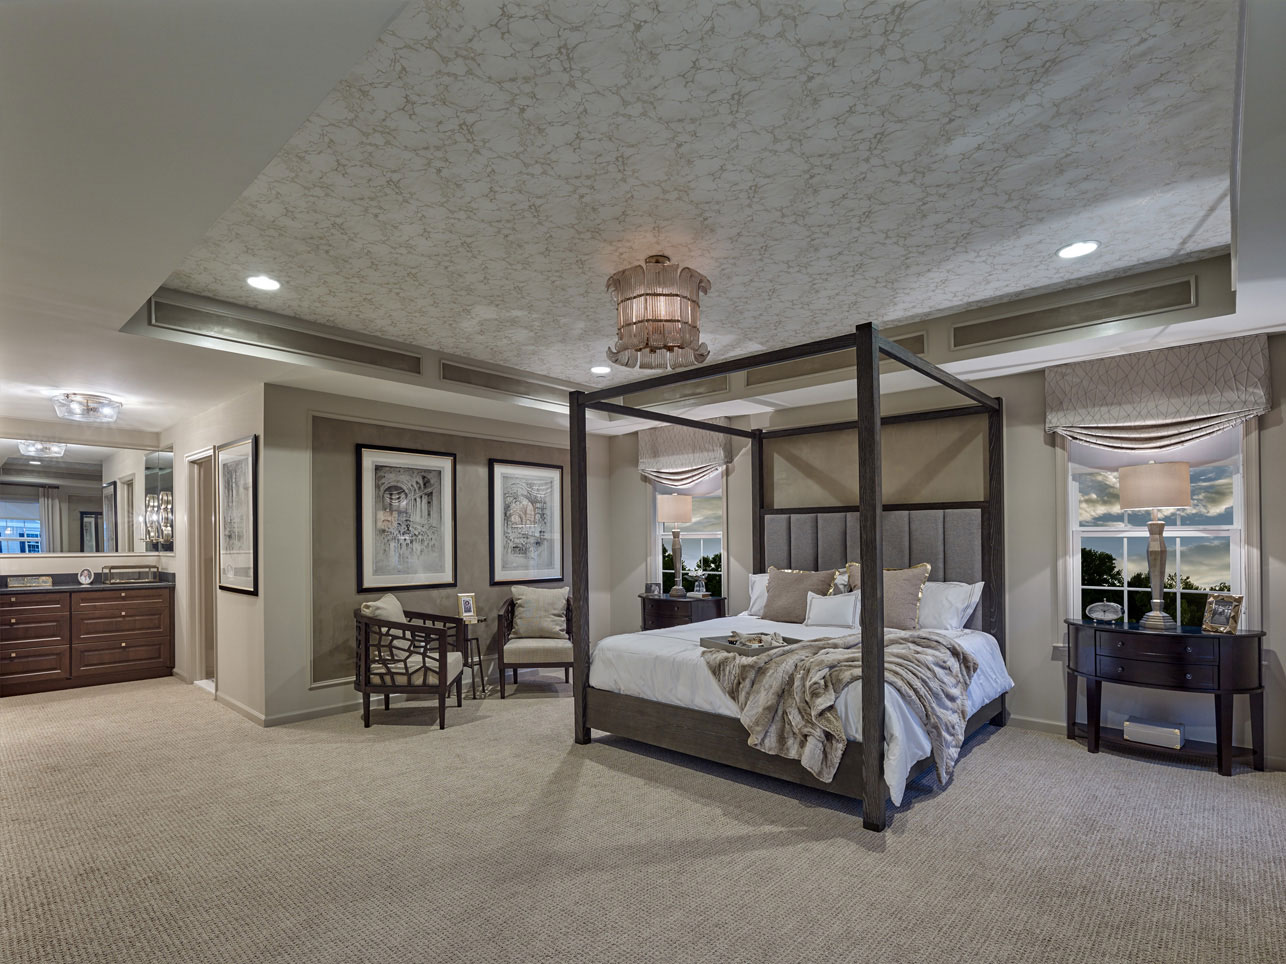 owners bedroom in a West Chester, PA home for sale